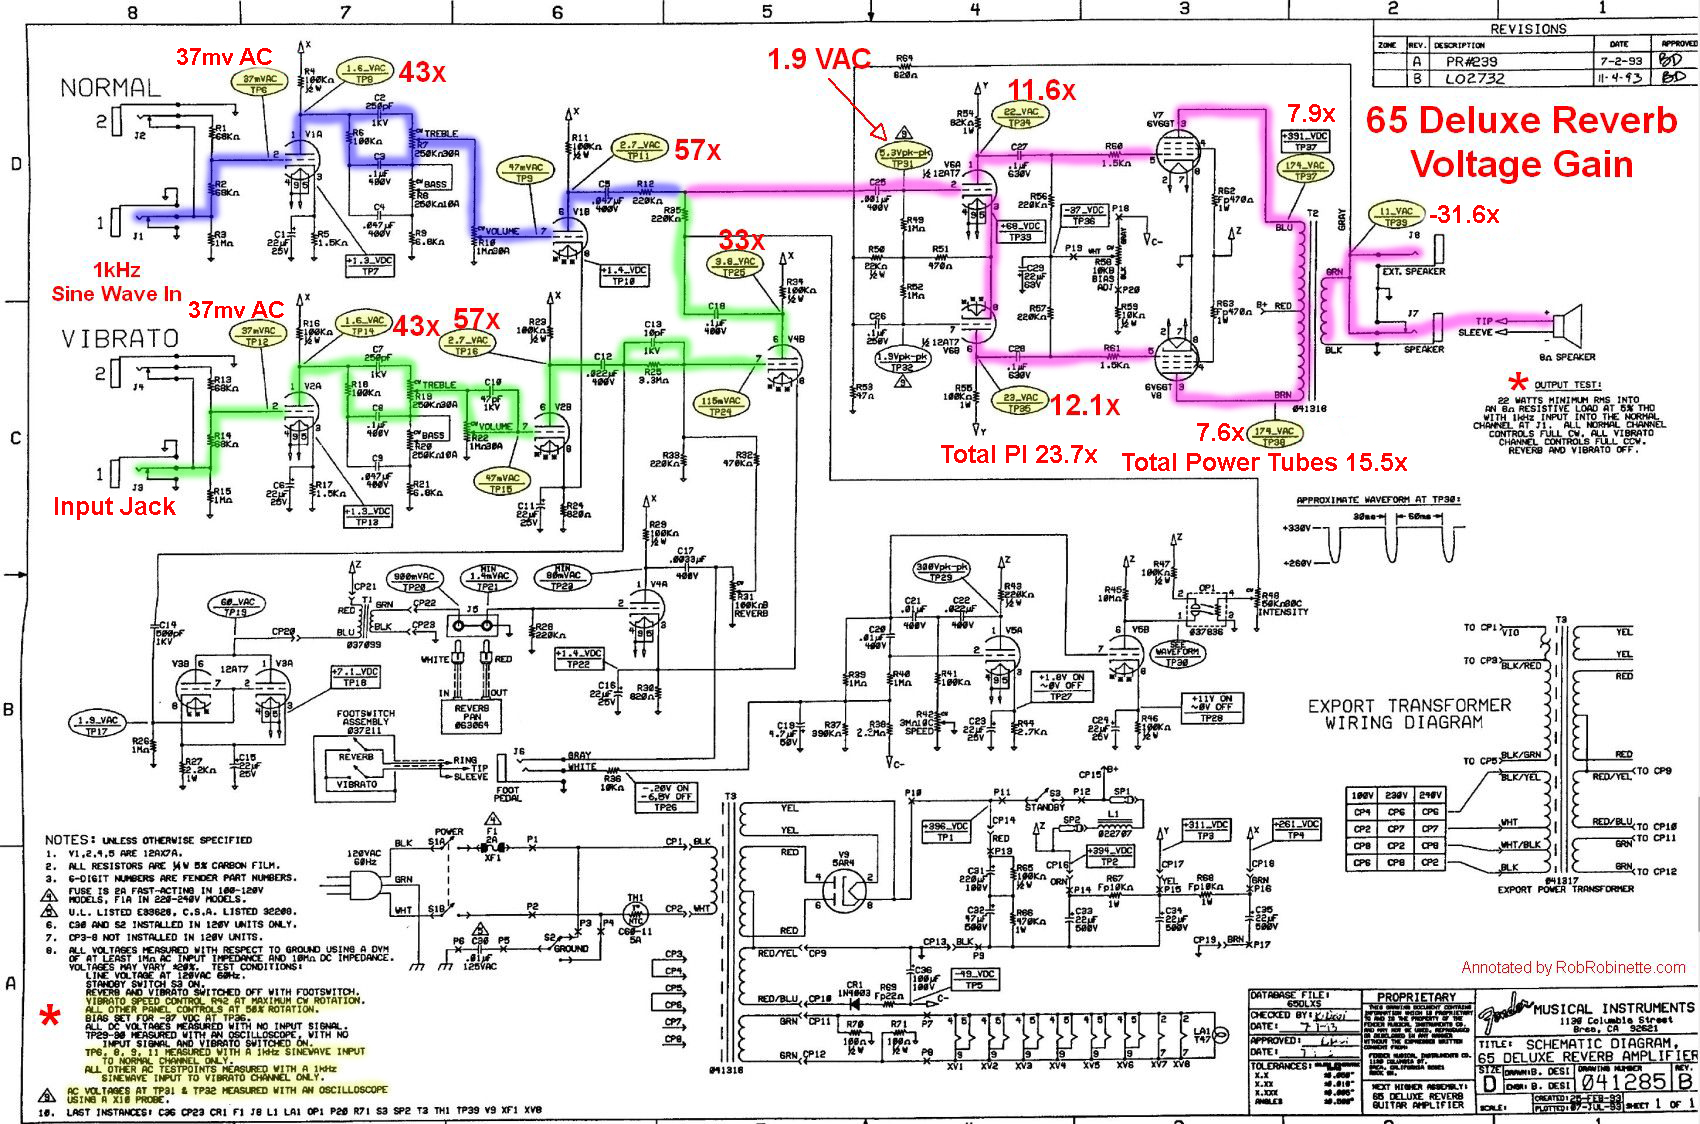 Temperature Control Wiring Diagram Will Be A Thing Ranco Controller How The Ab763 Works Omron